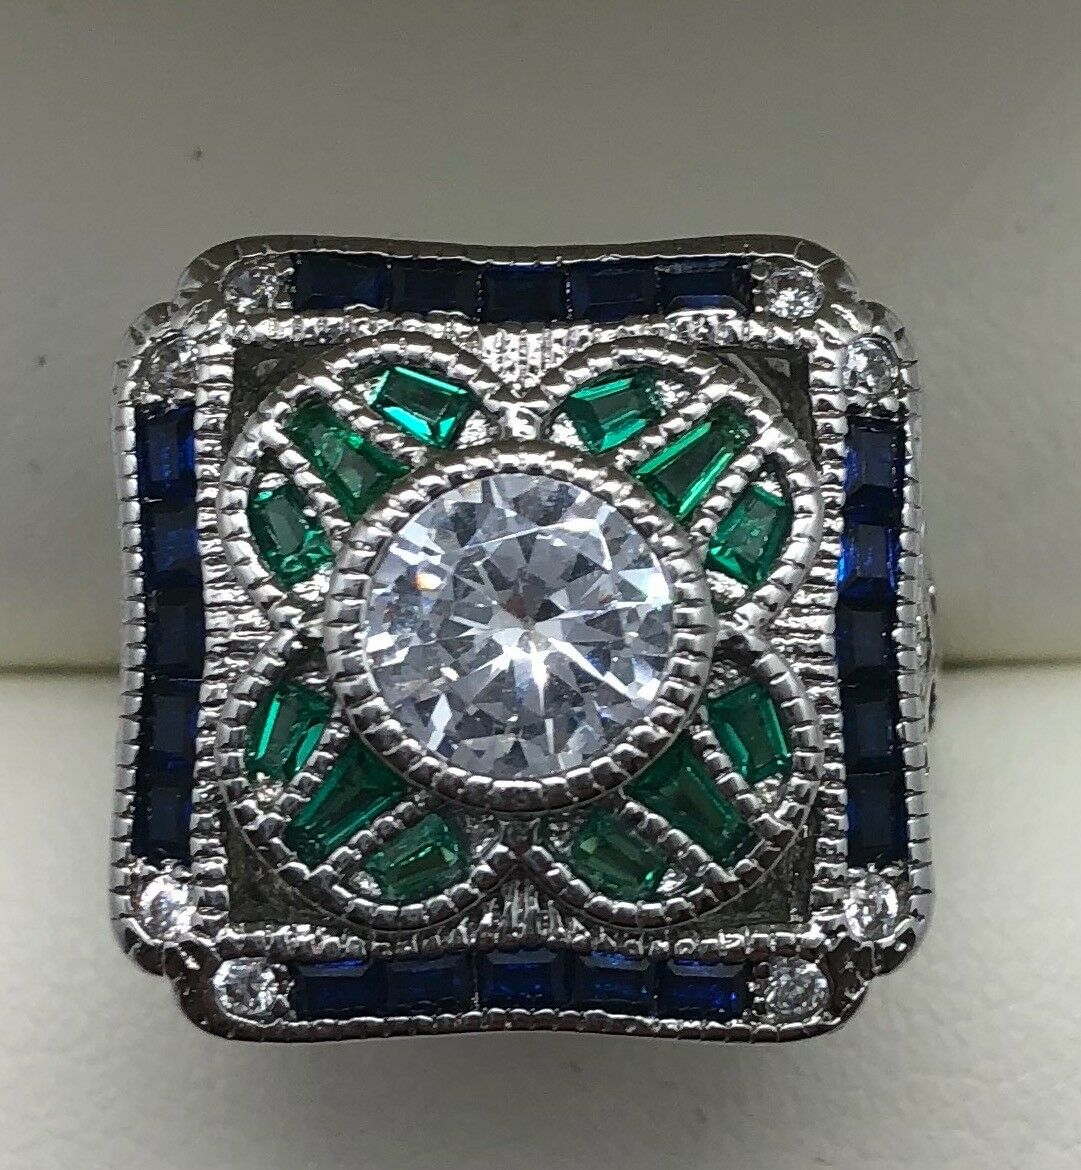 Ladies Fashion CZ, Emerald and Sapphire Ring with Pierced Scrollwork Sides sz 6